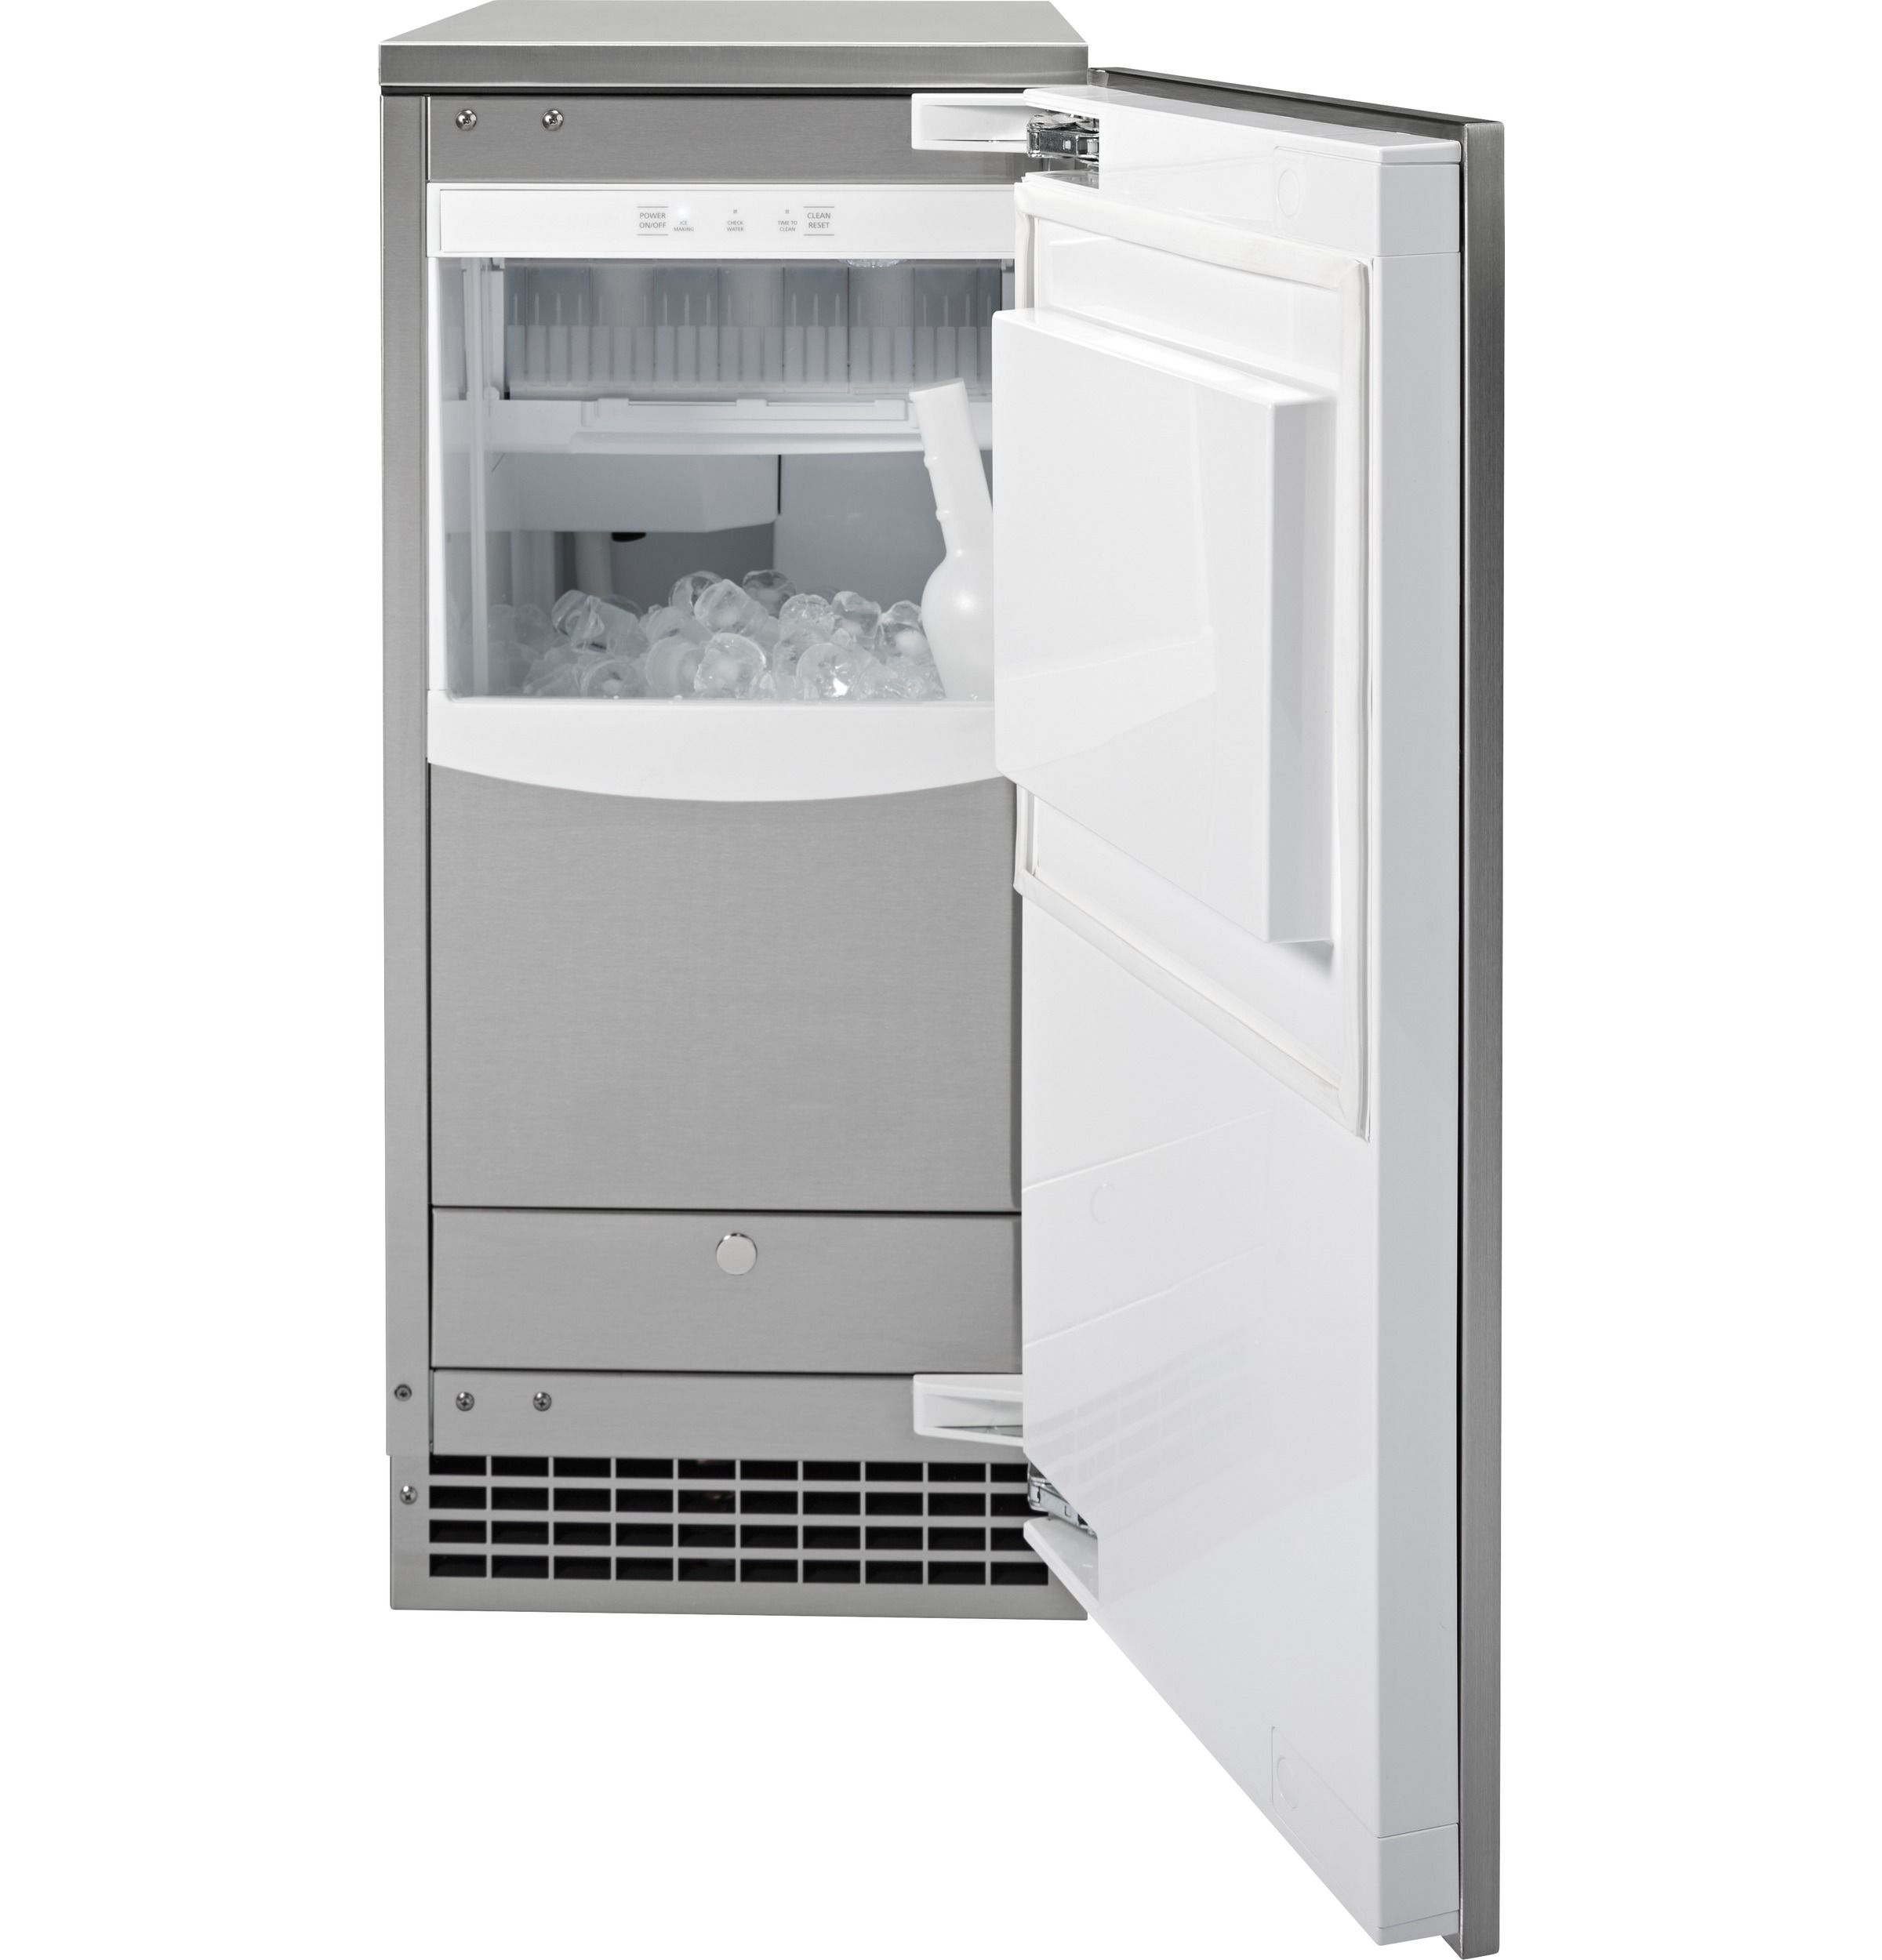 GE UCC15NJII Freestanding And Built-In Ice Maker With 65